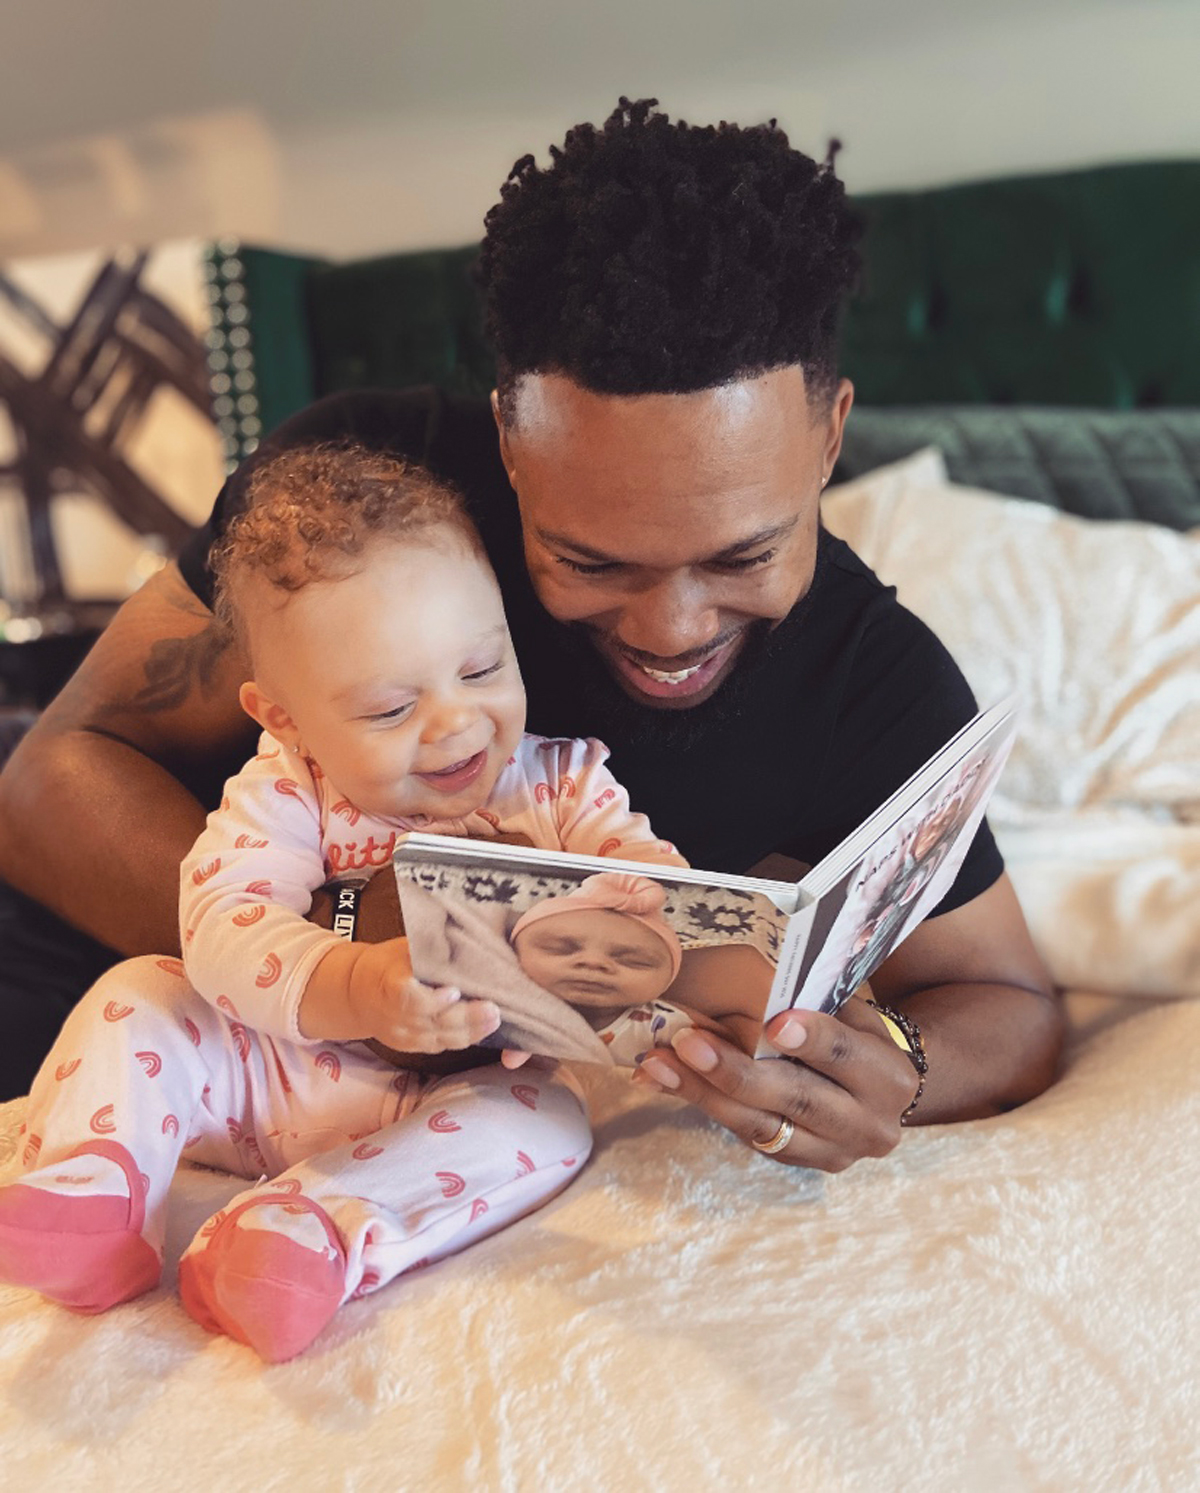 Father and baby daughter reading Artifact Uprising Board Book together on bed